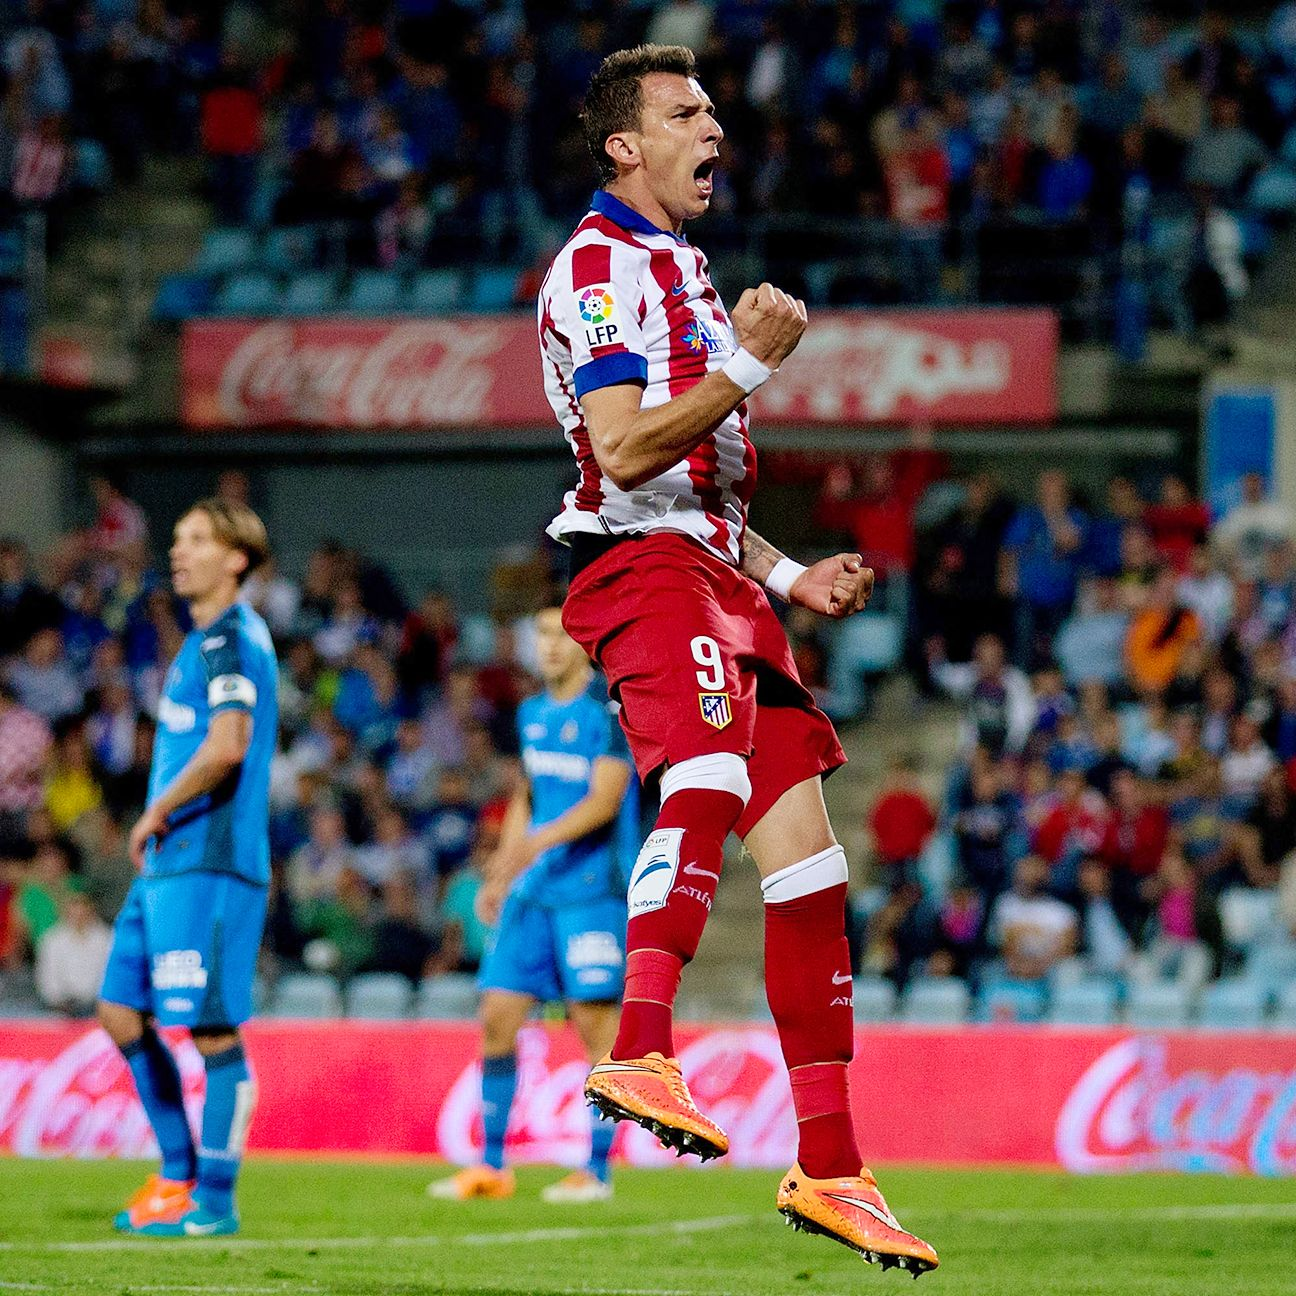 Mario Mandzukic's late first half goal was all Atletico would need to collect all three points at Getafe.